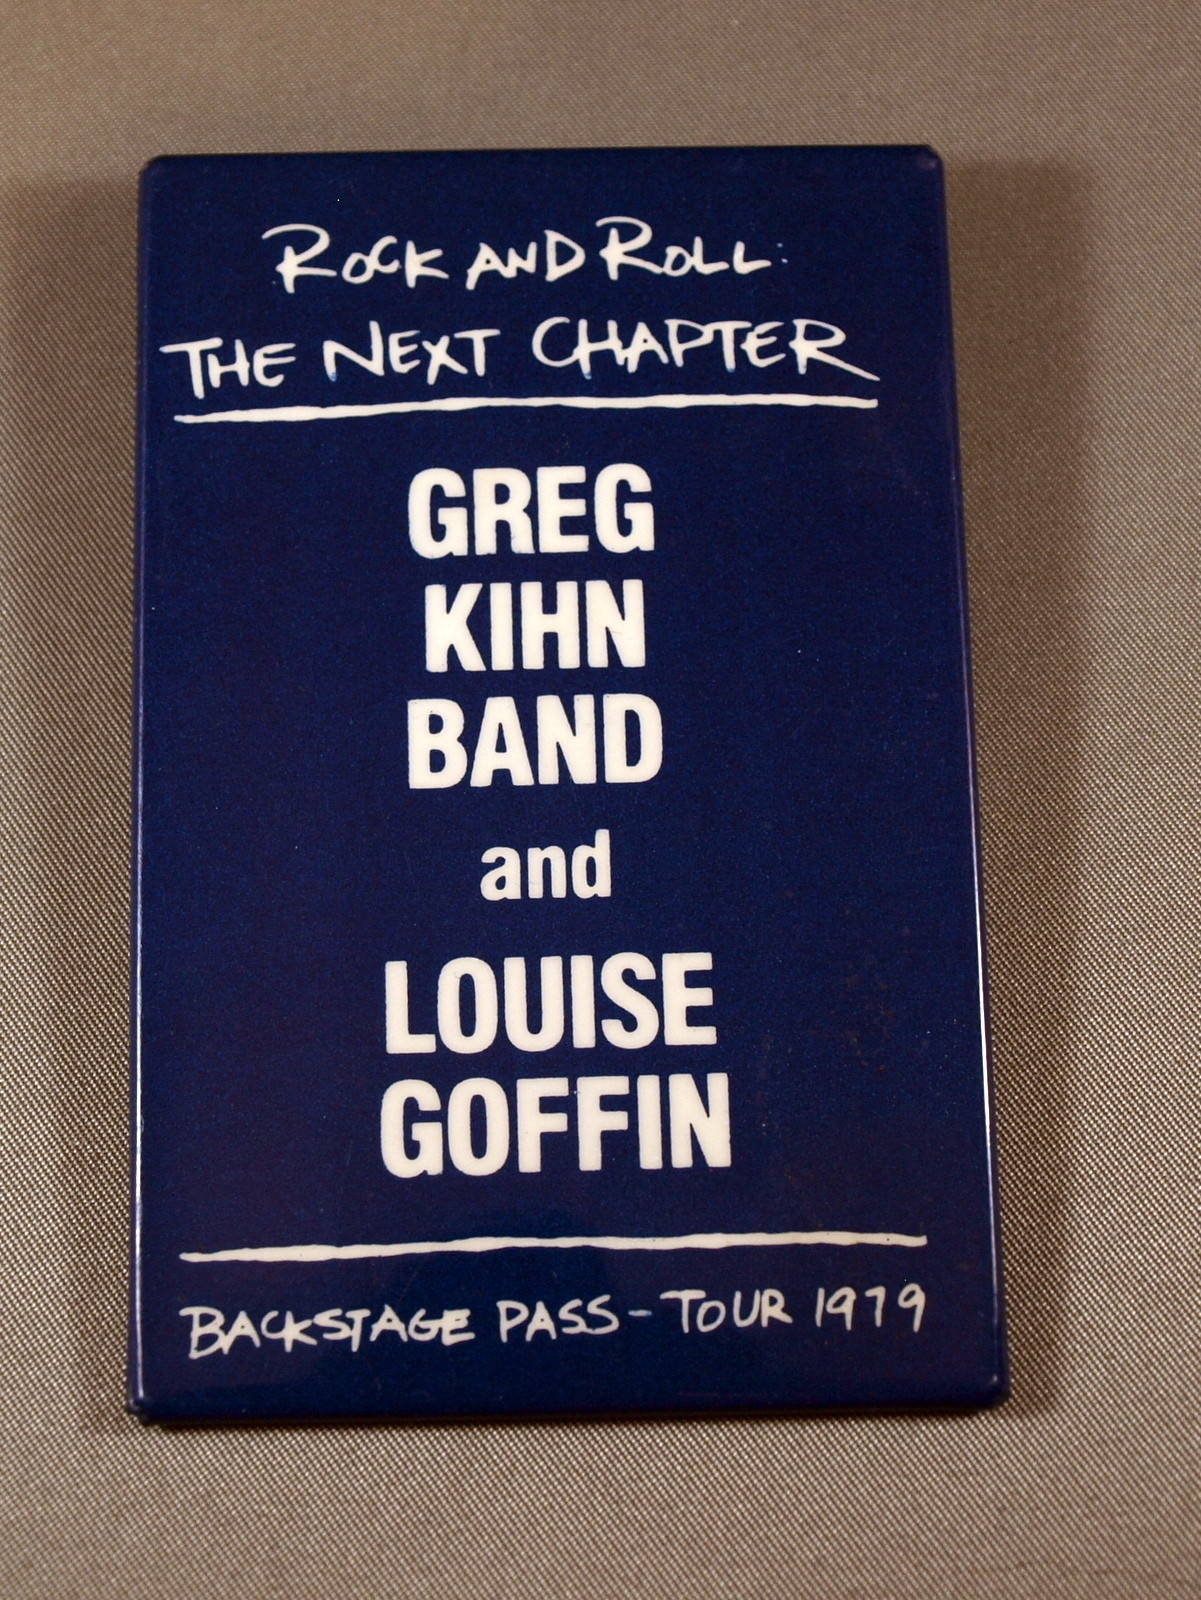 Greg Kihn Returns to Nashville Tuesday, The Last Time I played Nashville…